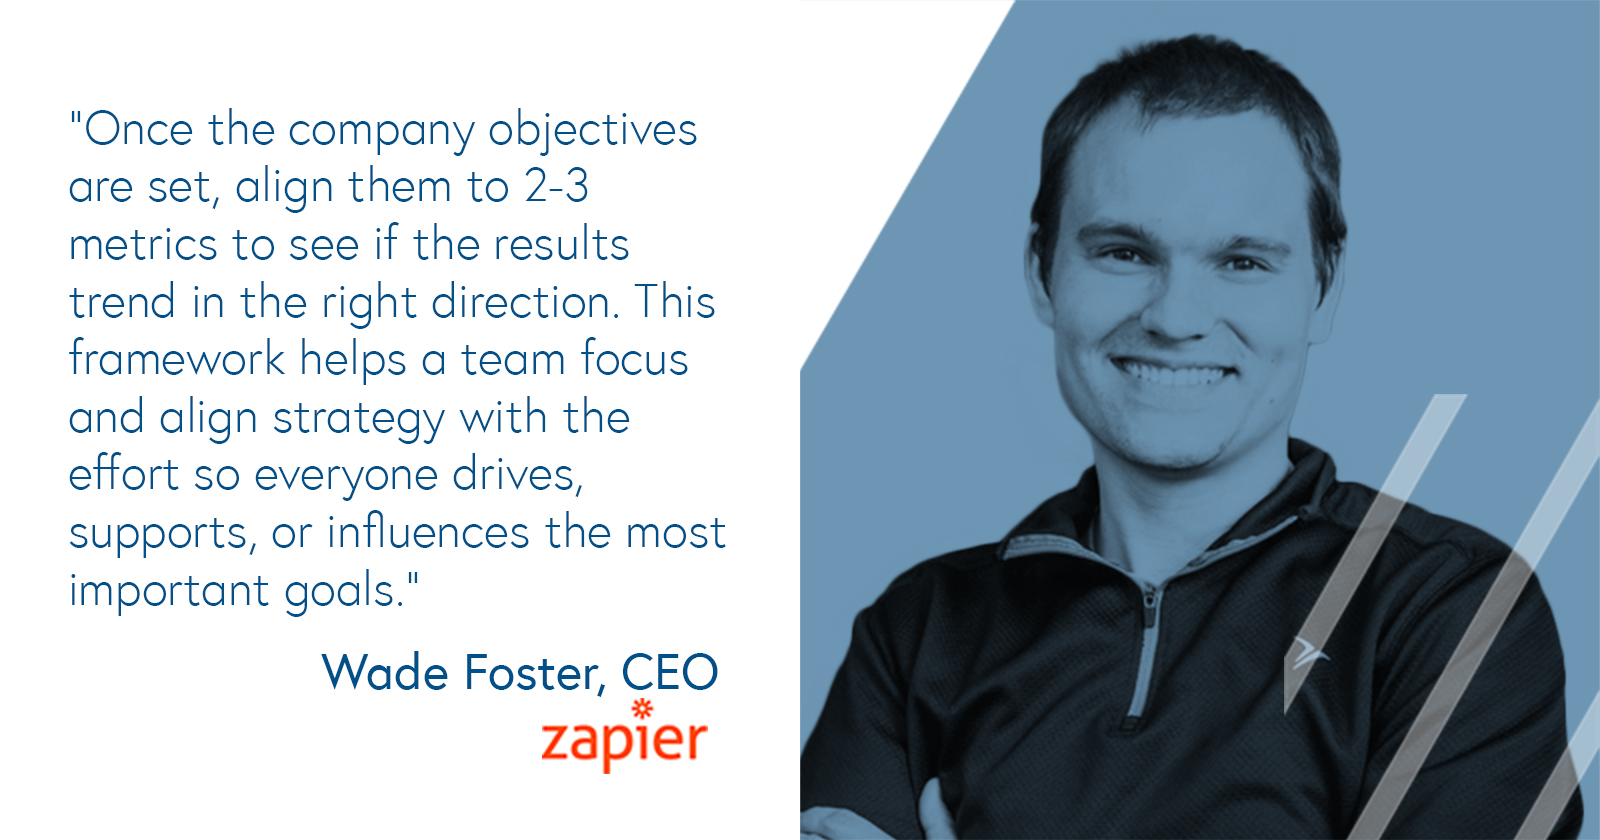 Wade Foster, CEO of Zapier on aligning metrics to your company objectives